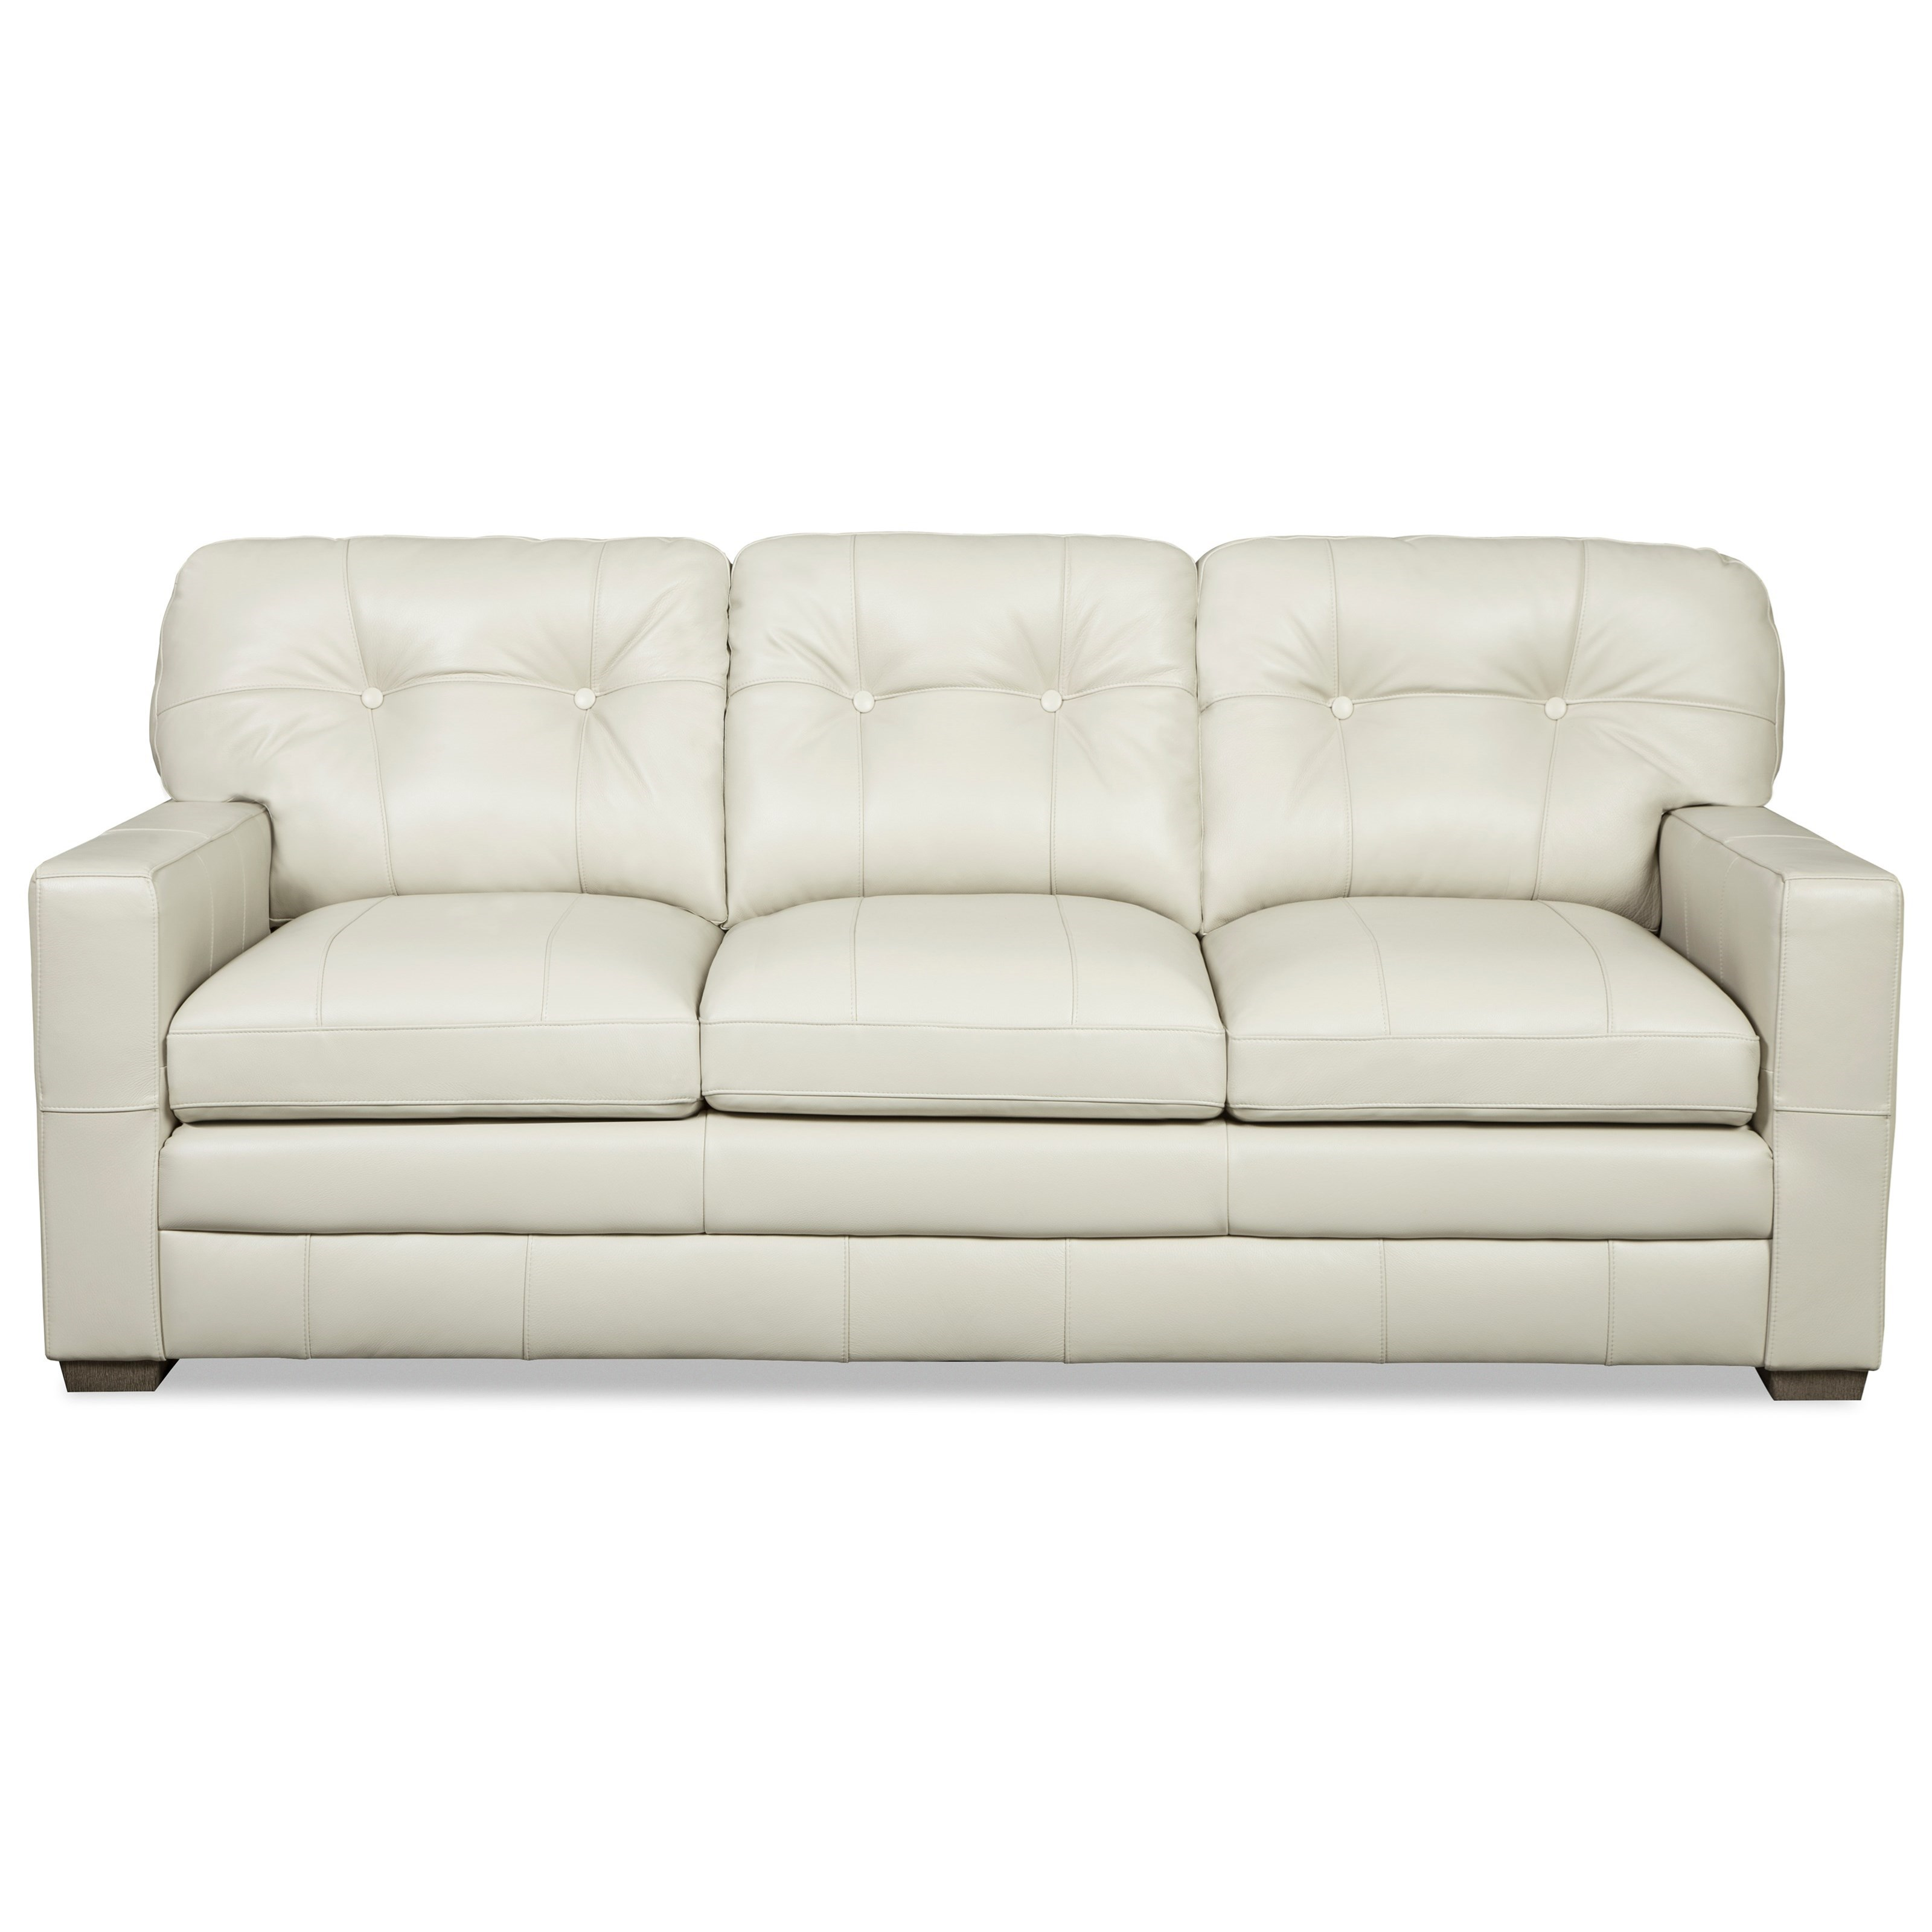 Contemporary Tufted Sofa - Cabrillo by Best Home Furnishings ...